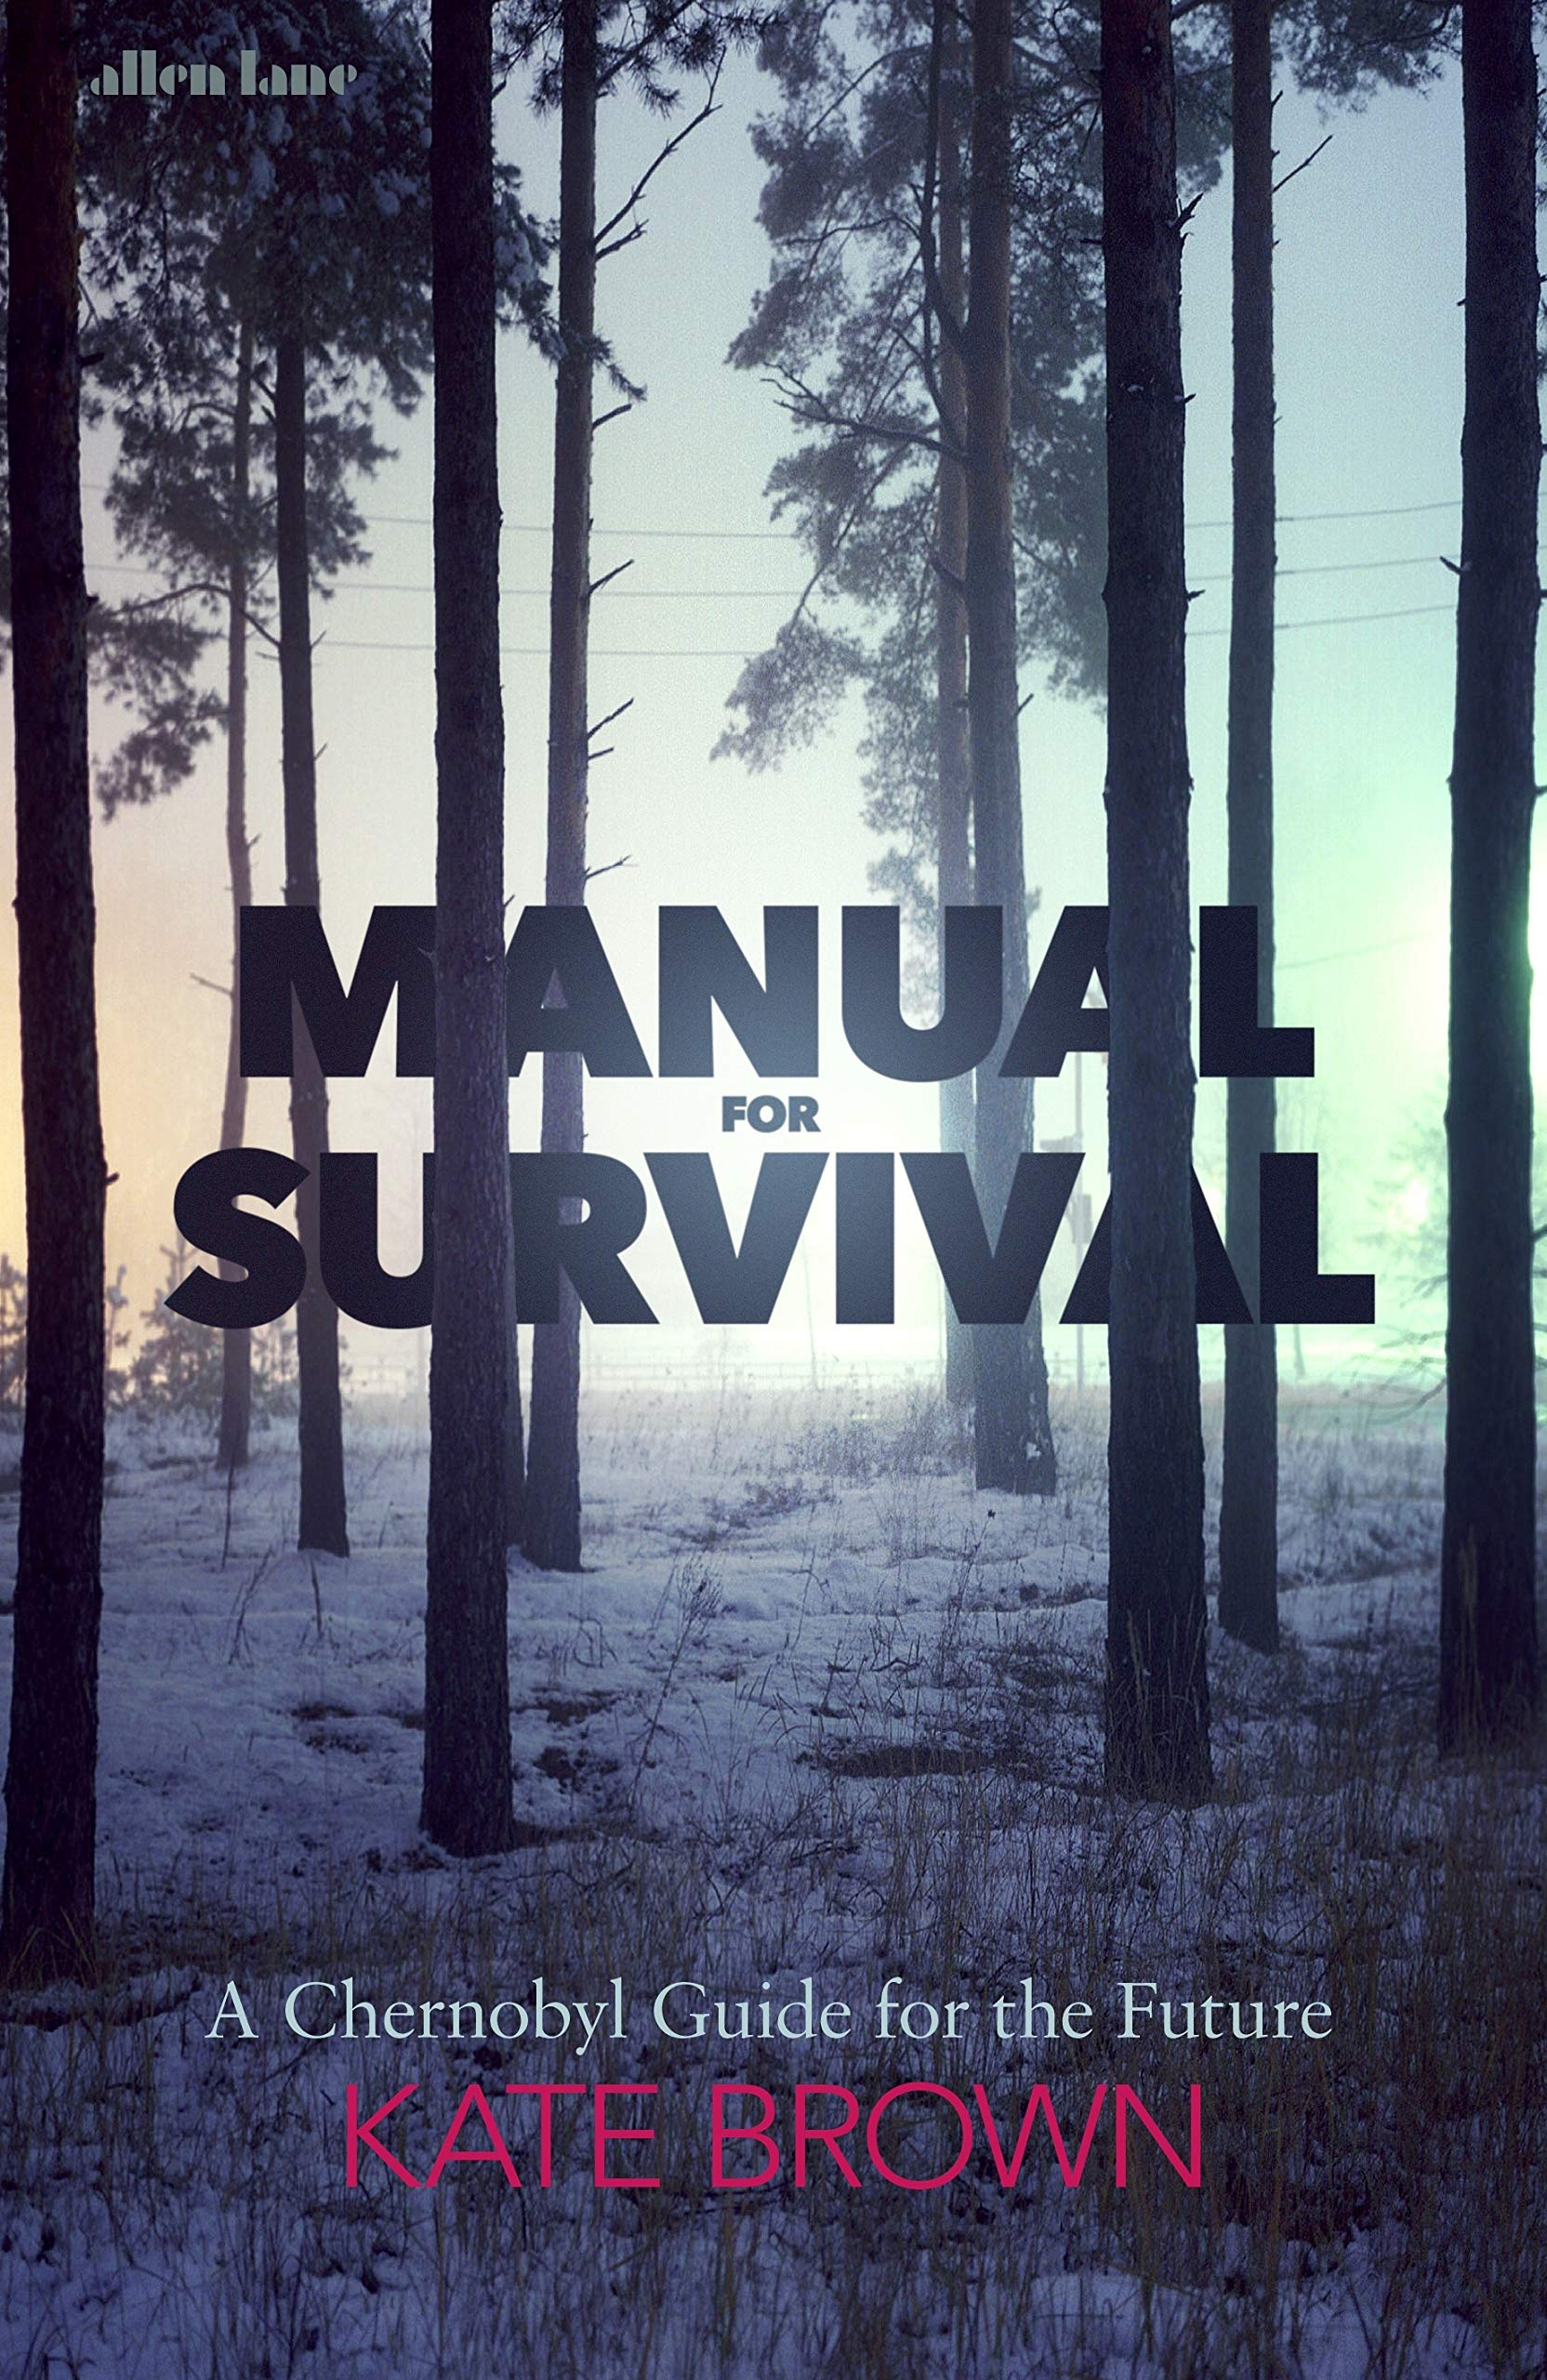 Manual for Survival: A Chernobyl Guide to the Future: Amazon